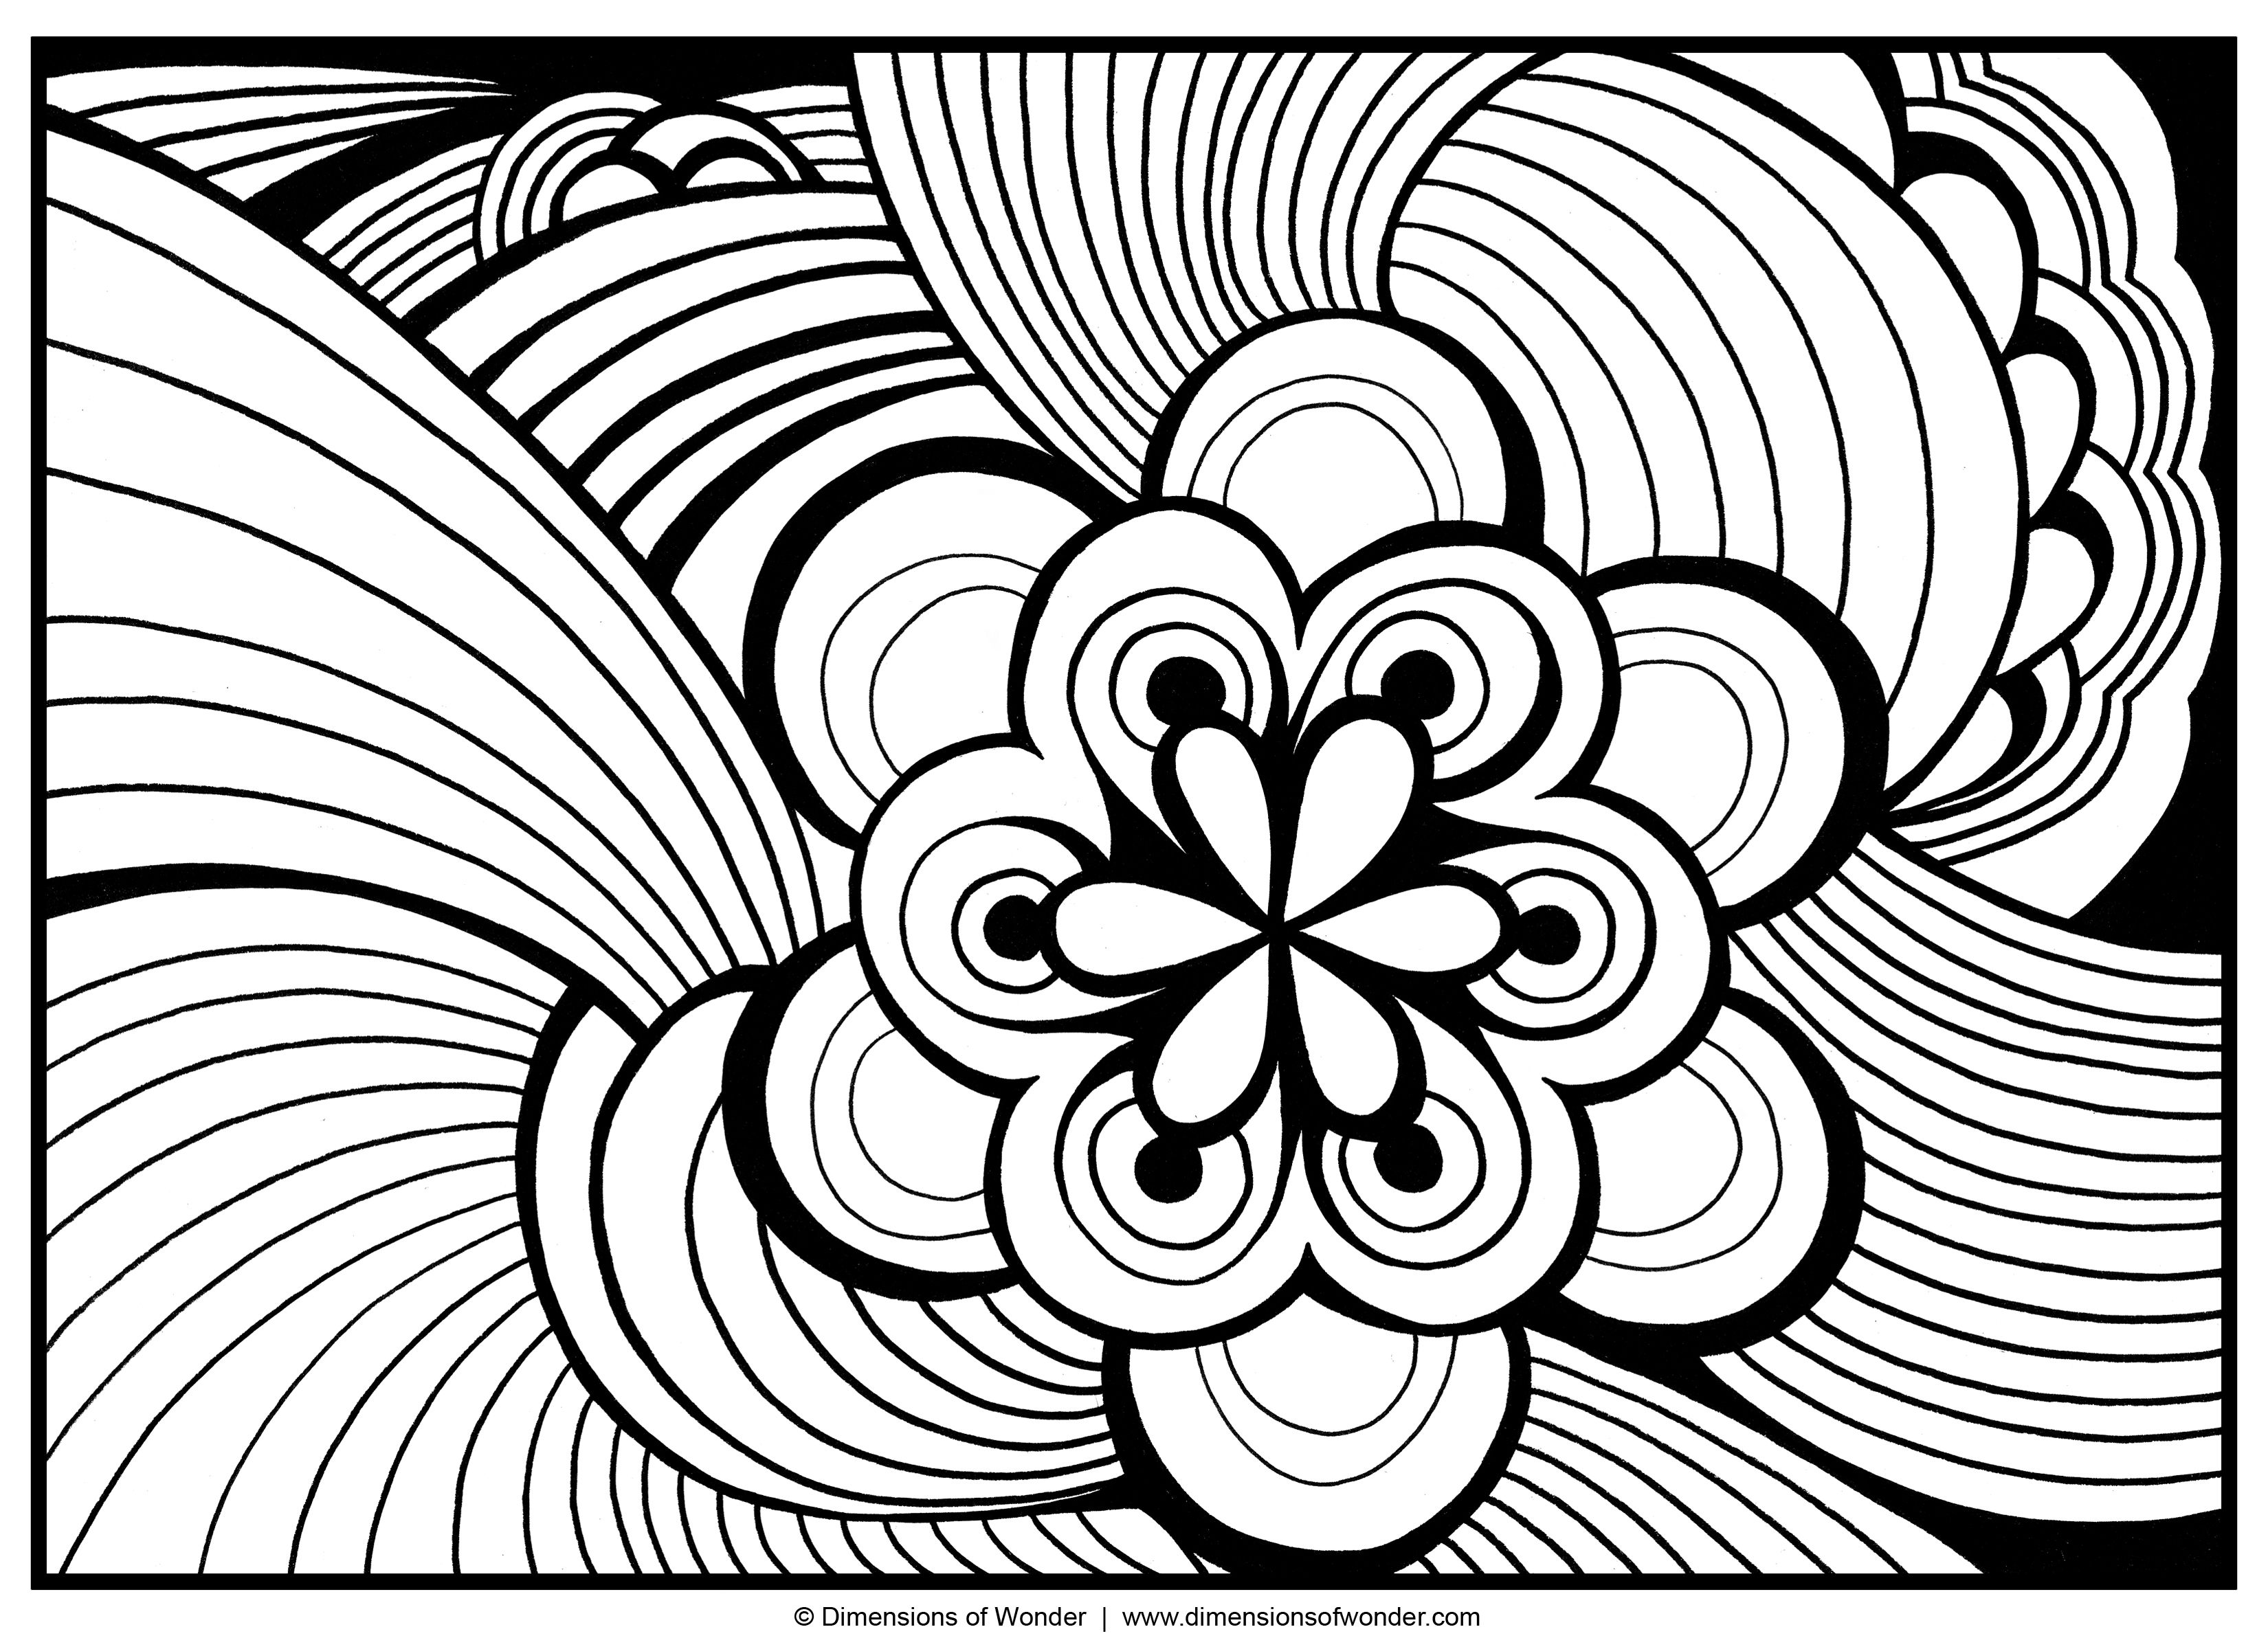 Abstract Coloring Pages Dow 01 Dimensions Of Wonder Abstract Coloring Pages Cool Coloring Pages Mandala Coloring Pages